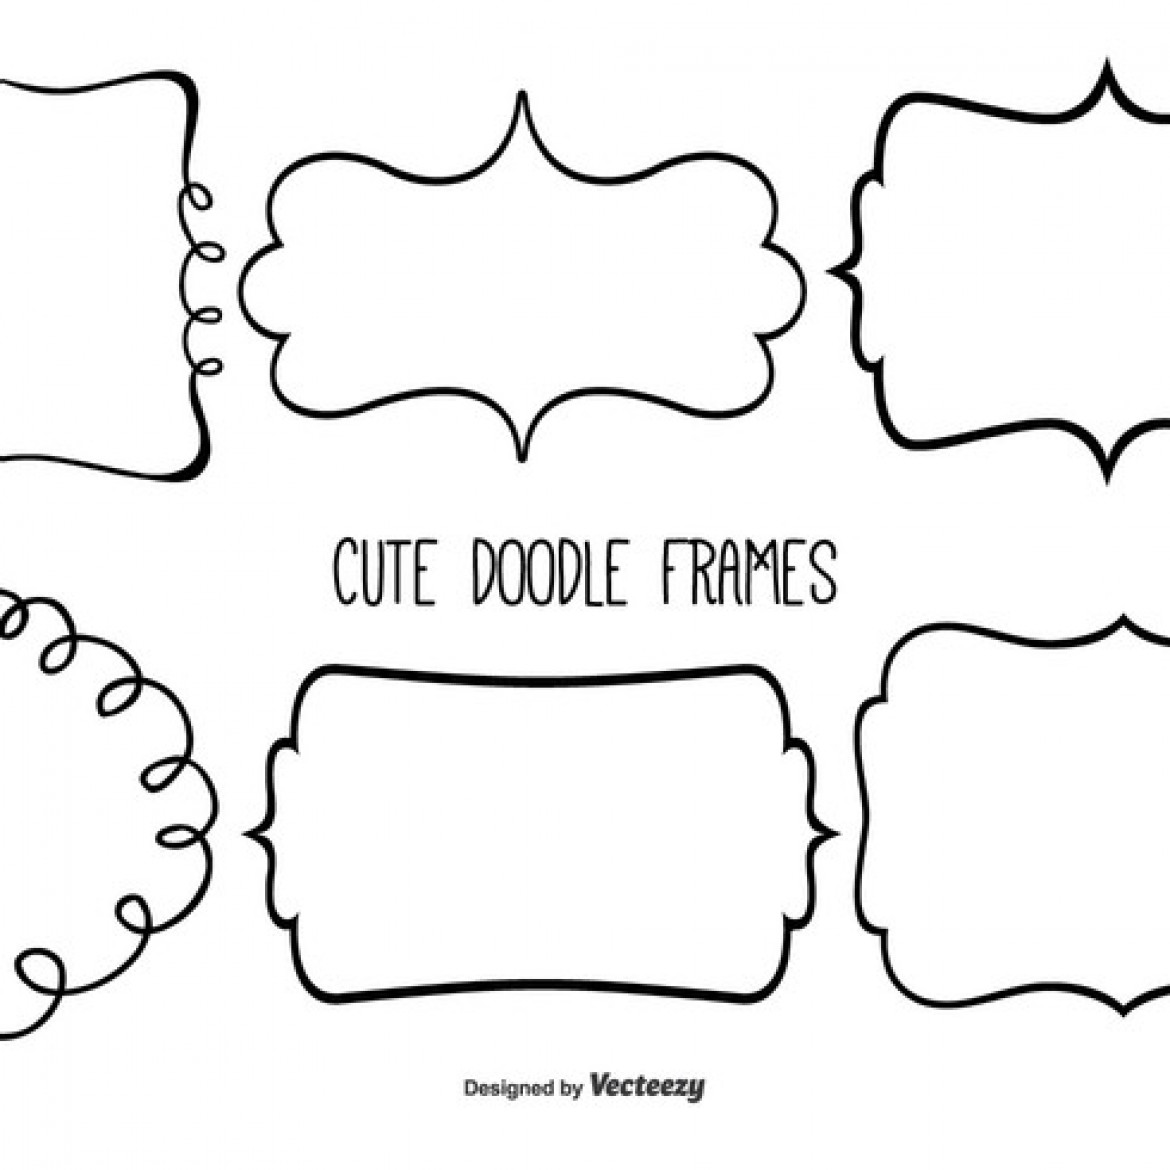 free vector cute doodle frame set 31625 my graphic hunt